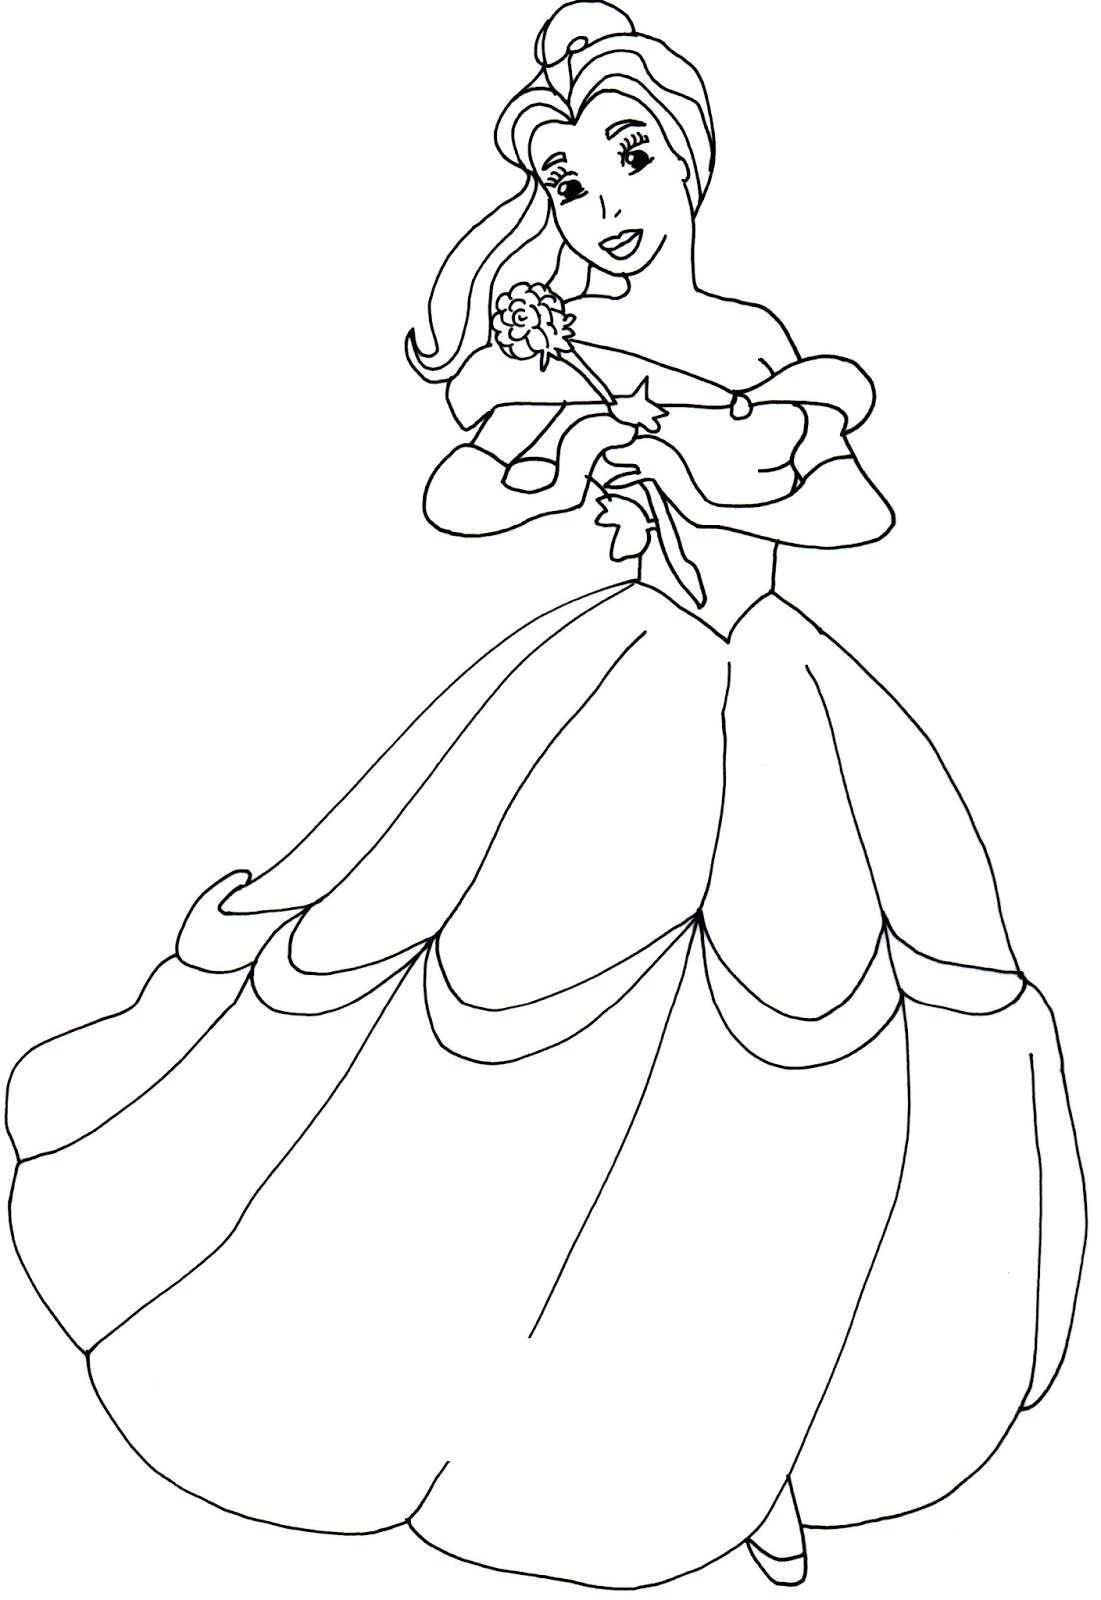 Sofia The First Coloring Pages Princess Belle